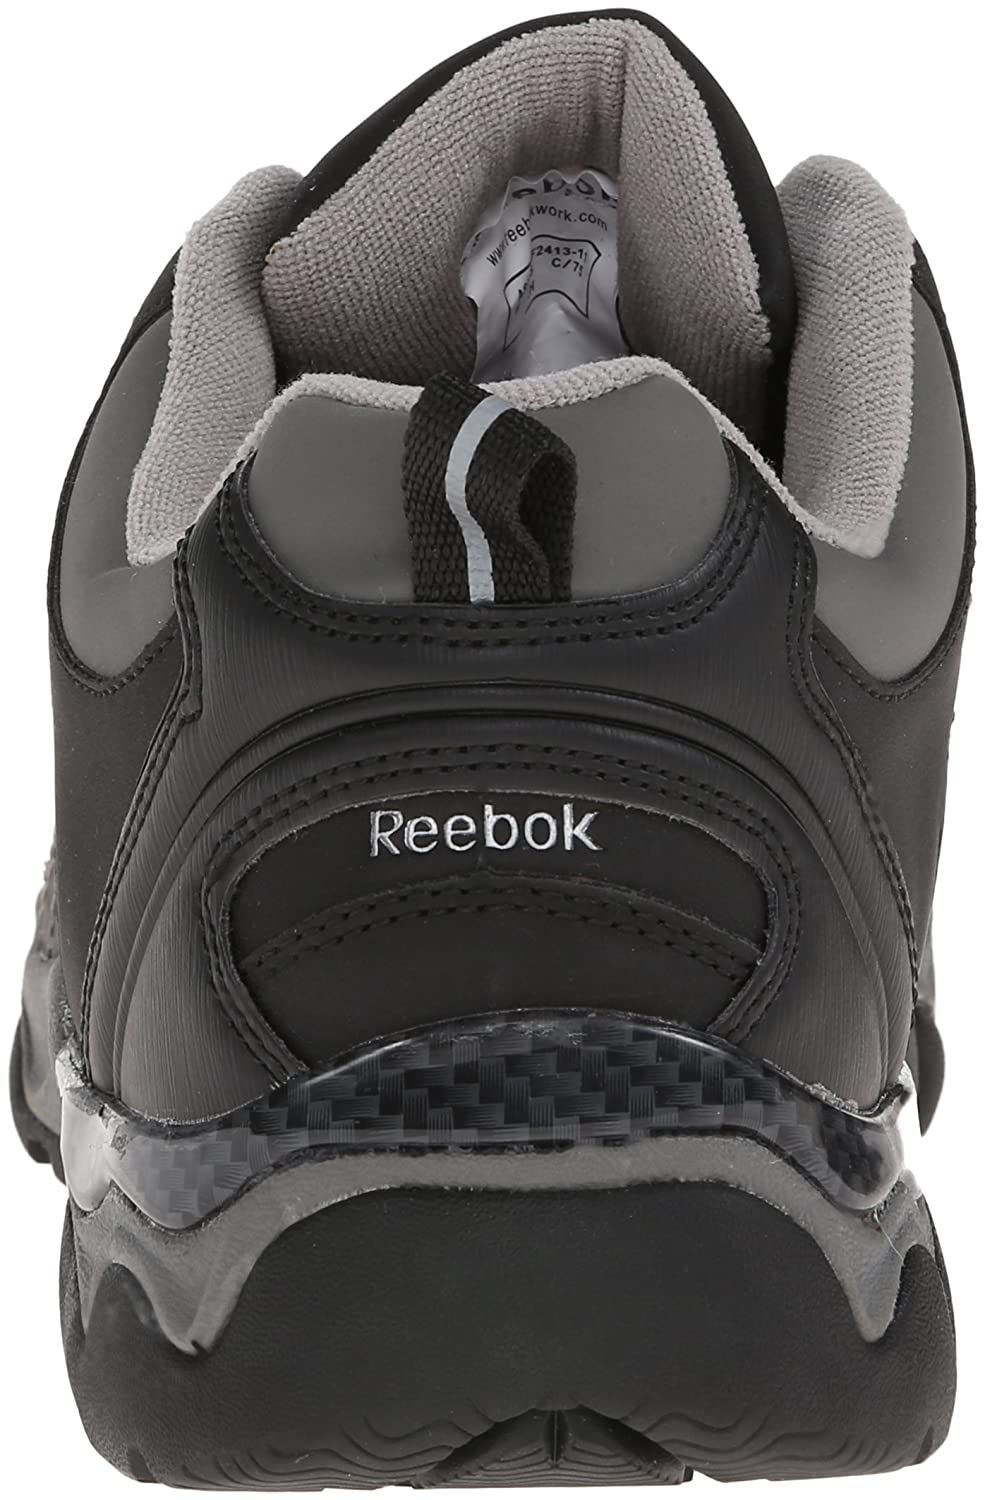 6ad690c74add Amazon.com  Reebok Work Men s Beamer RB1062 EH Athletic Safety Shoe  Shoes